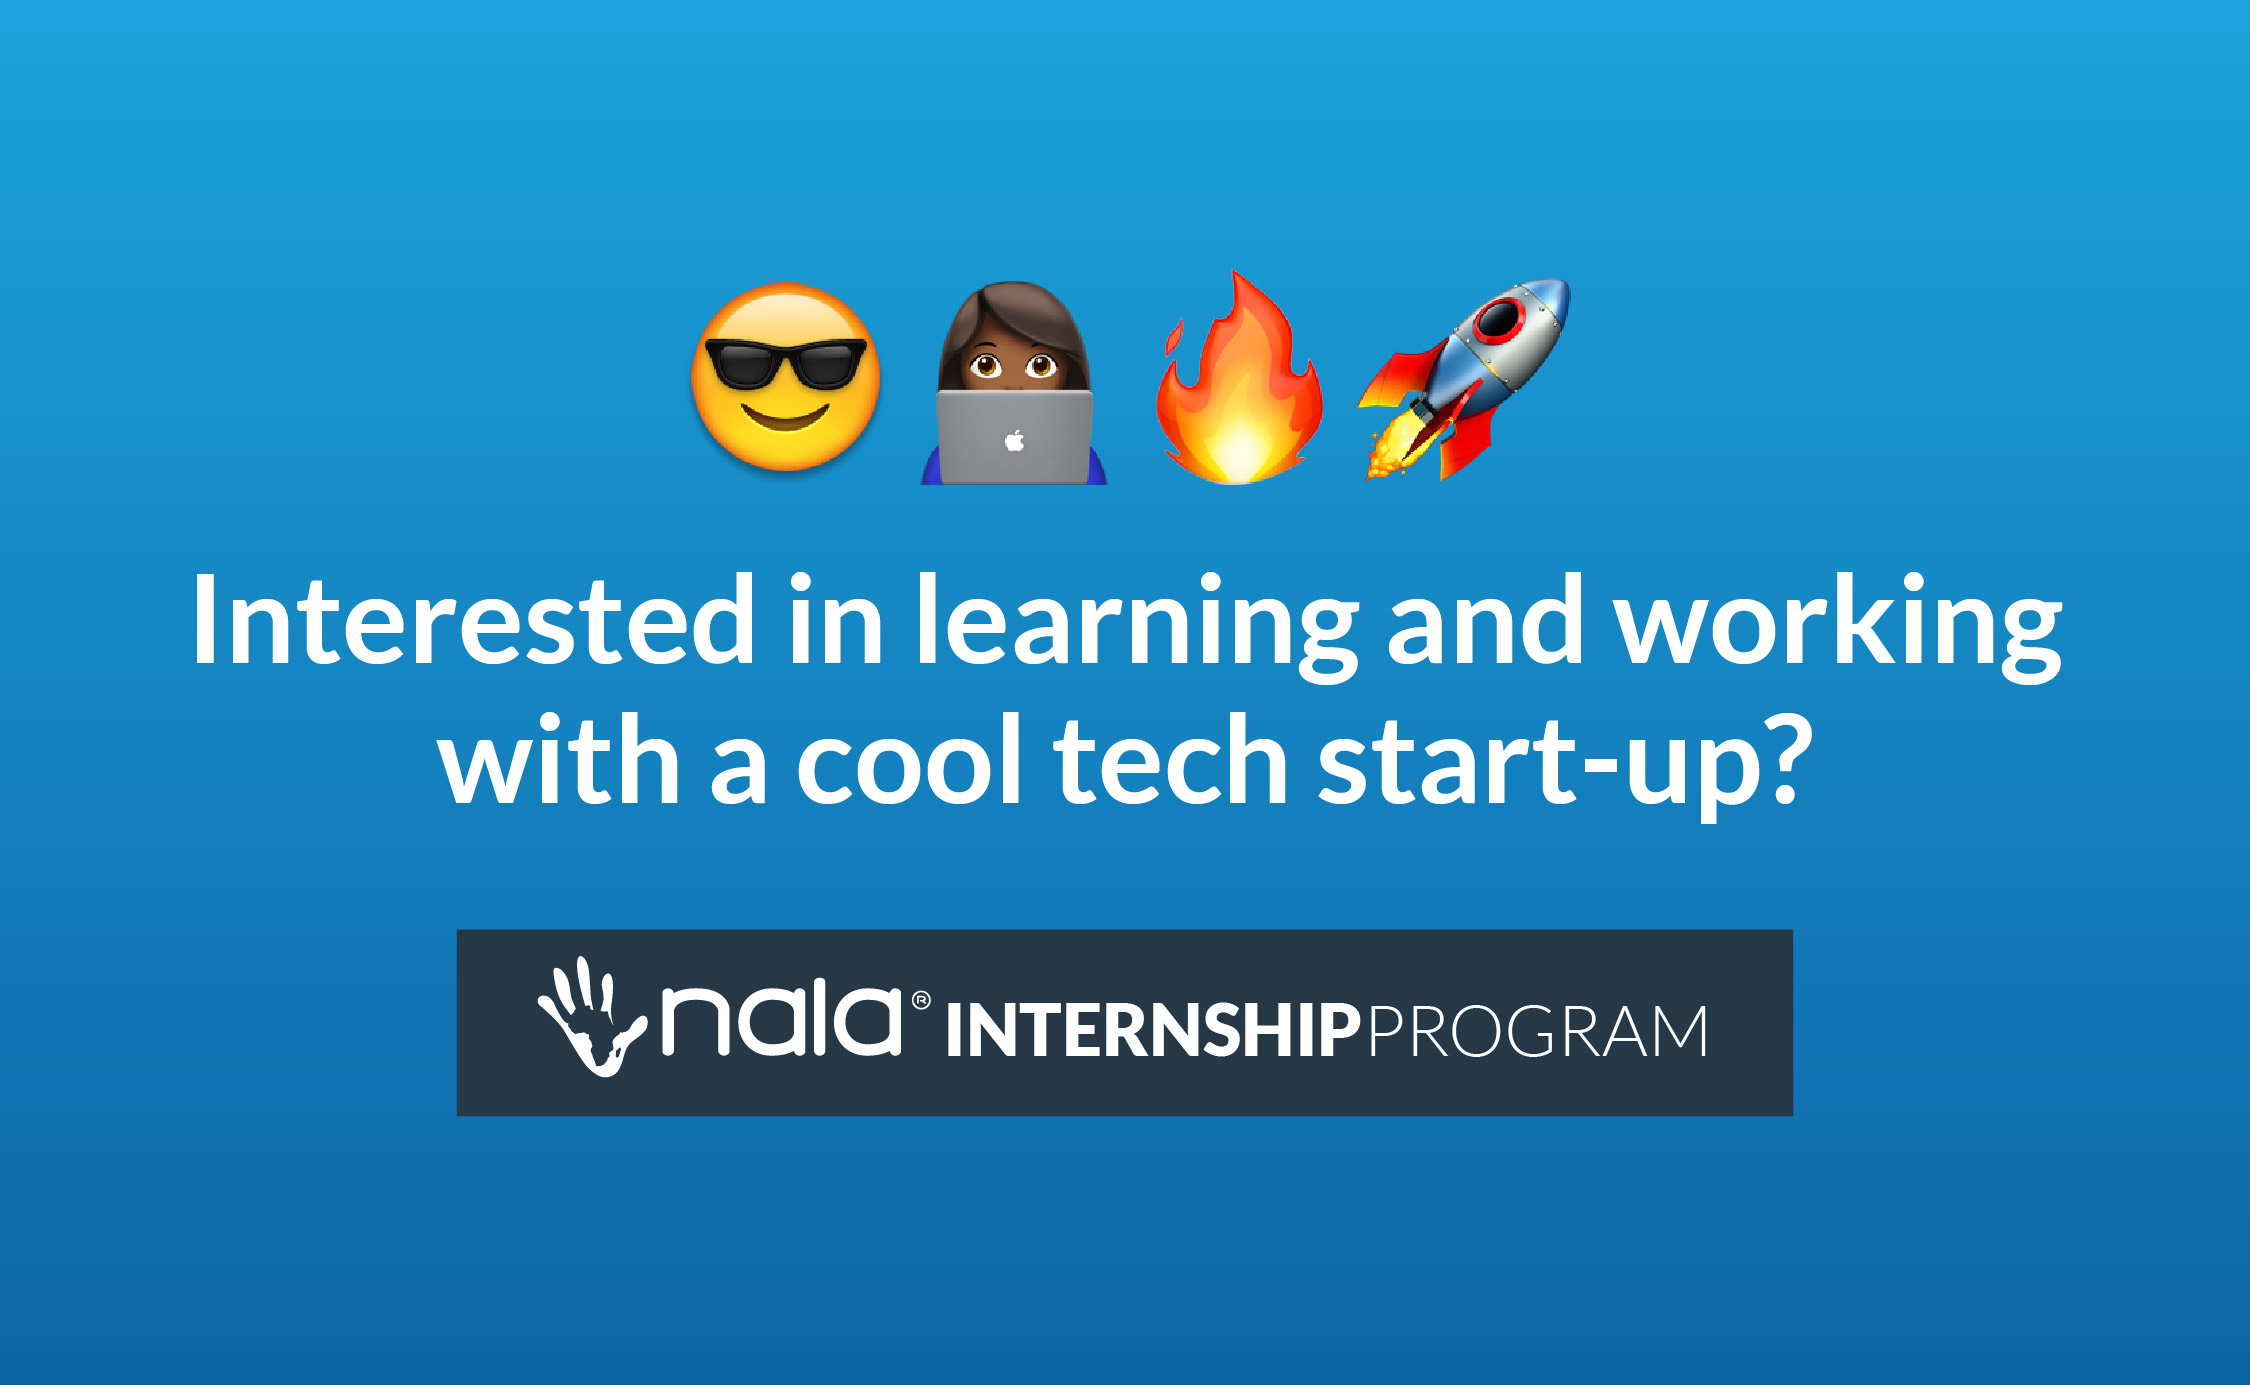 NALA_Internship_Program_Post_1080x665_2-03.jpg